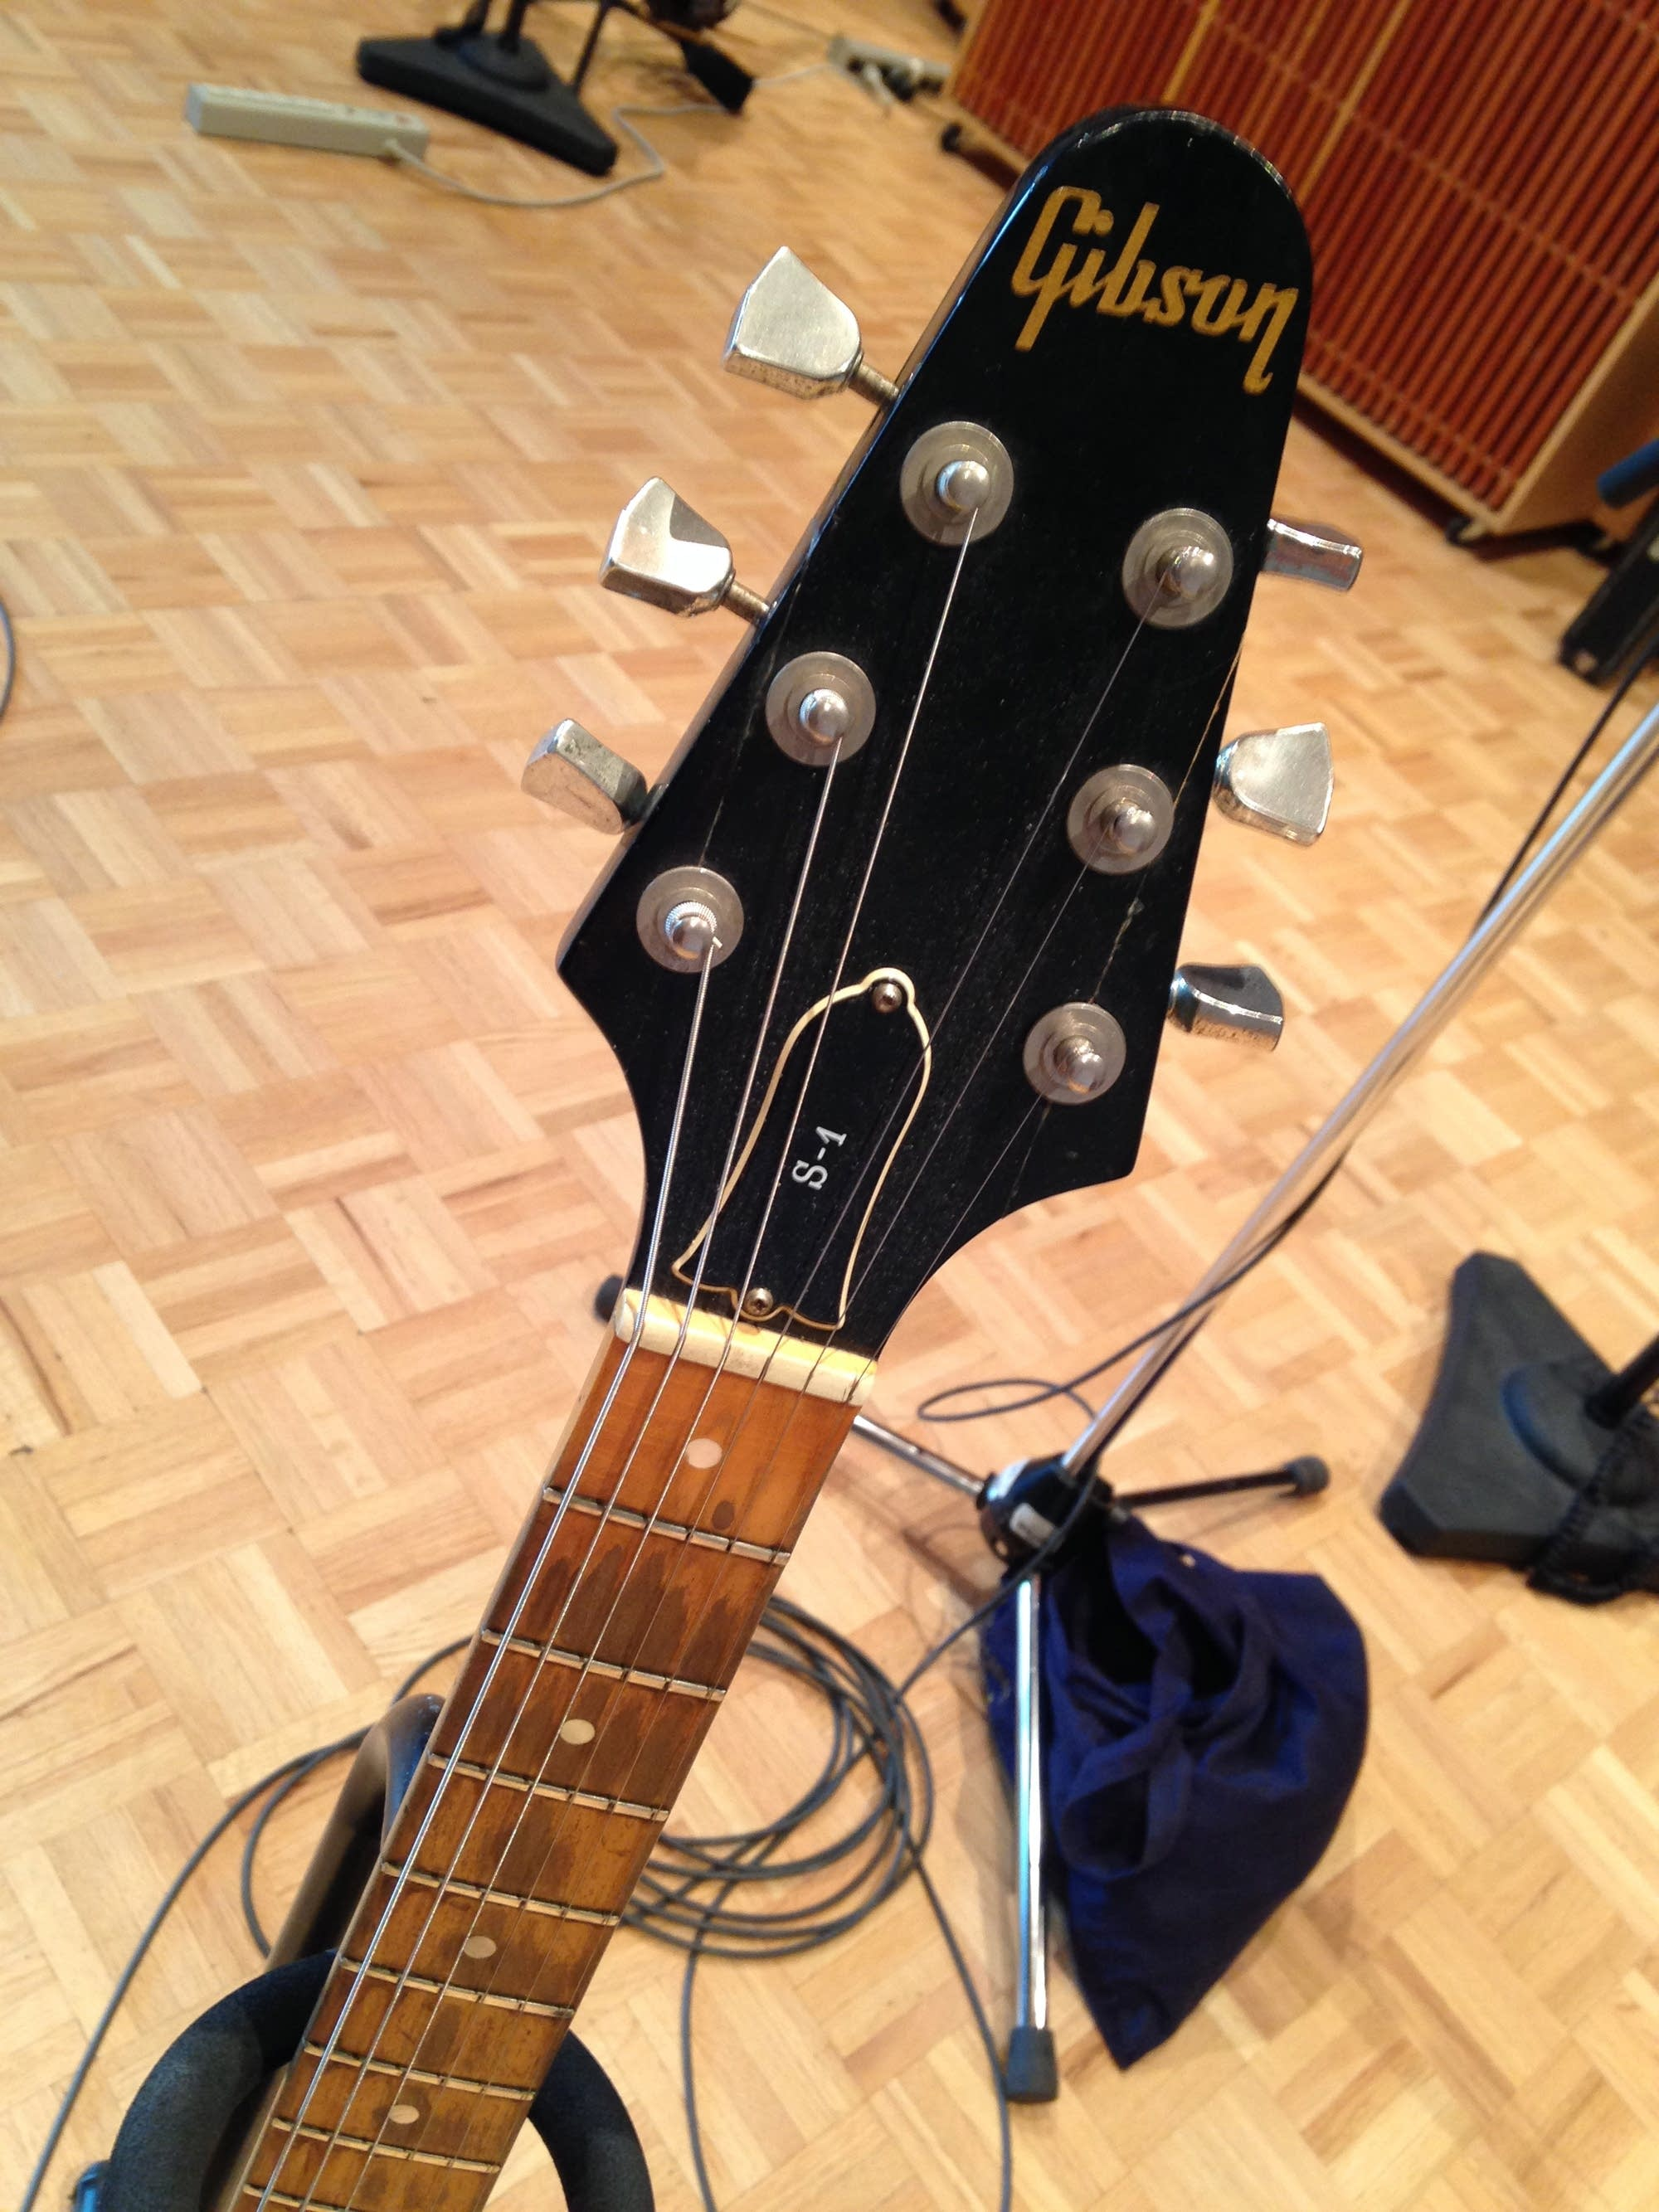 angel olsen gibson s 1 headstock